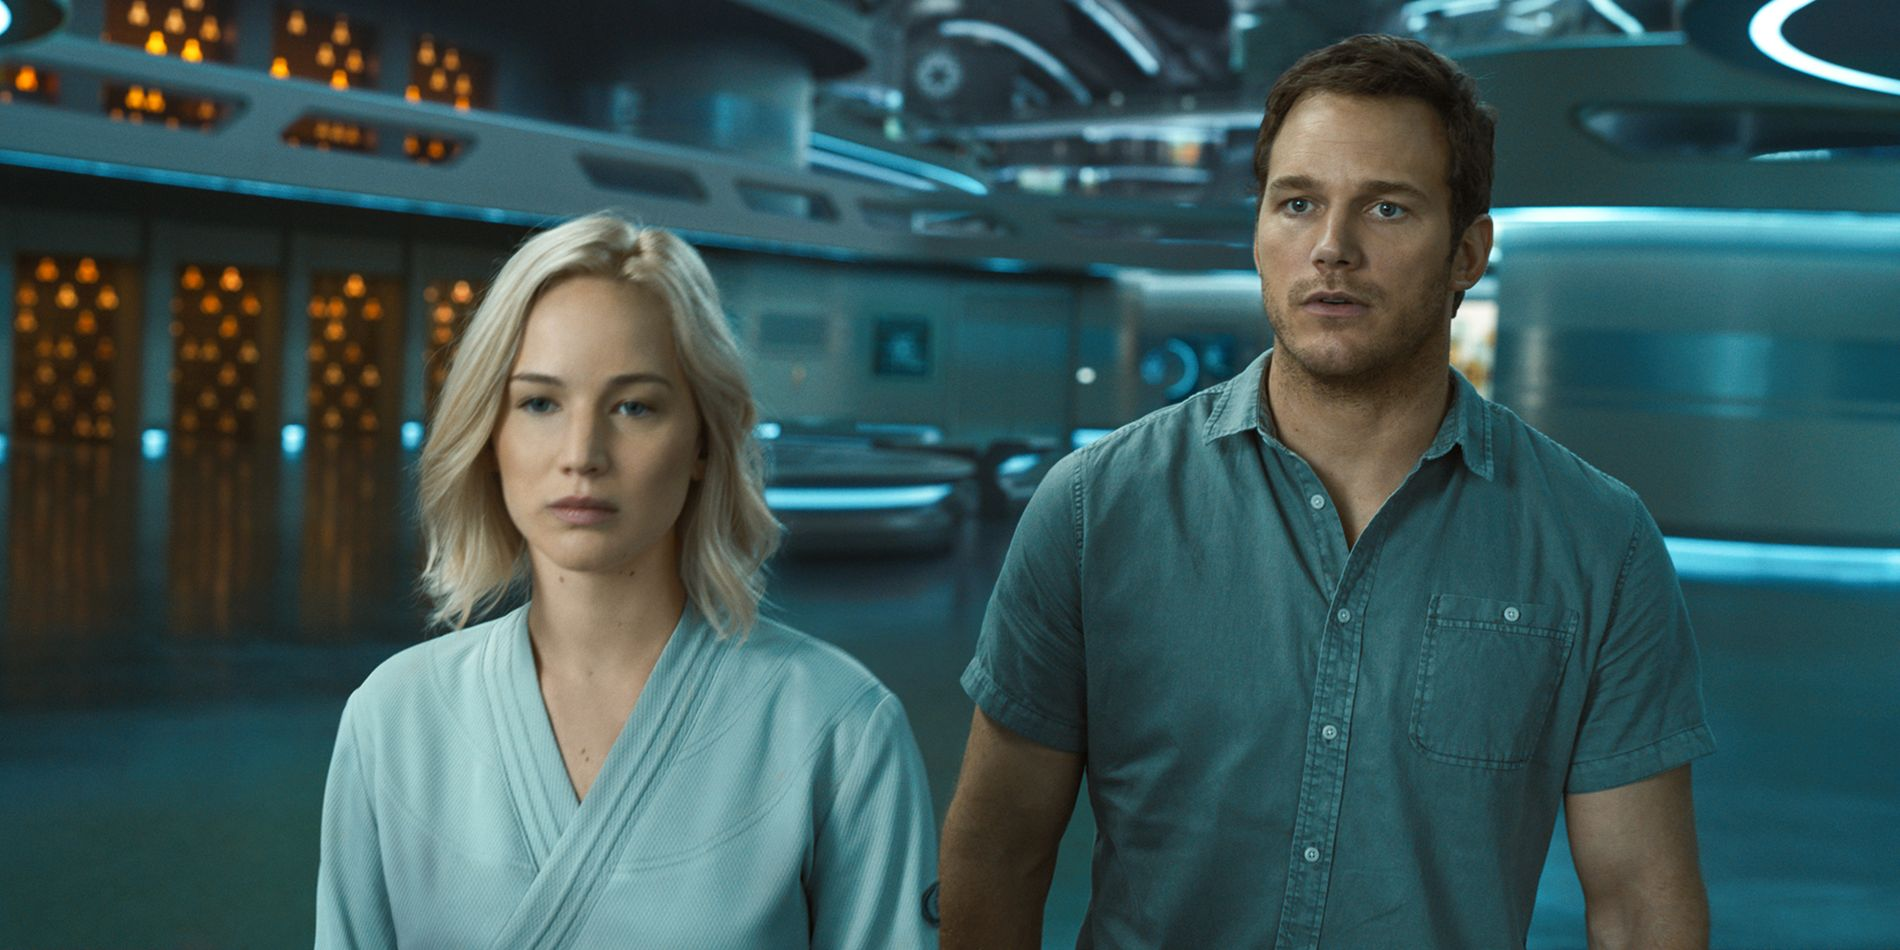 MENS ALLE DE ANDRE SOVER: Jennifer Lawrence og Chris Pratt i Morten Tyldums film «Passengers». FOTO: UNITED INTERNATIONAL PICTURES.